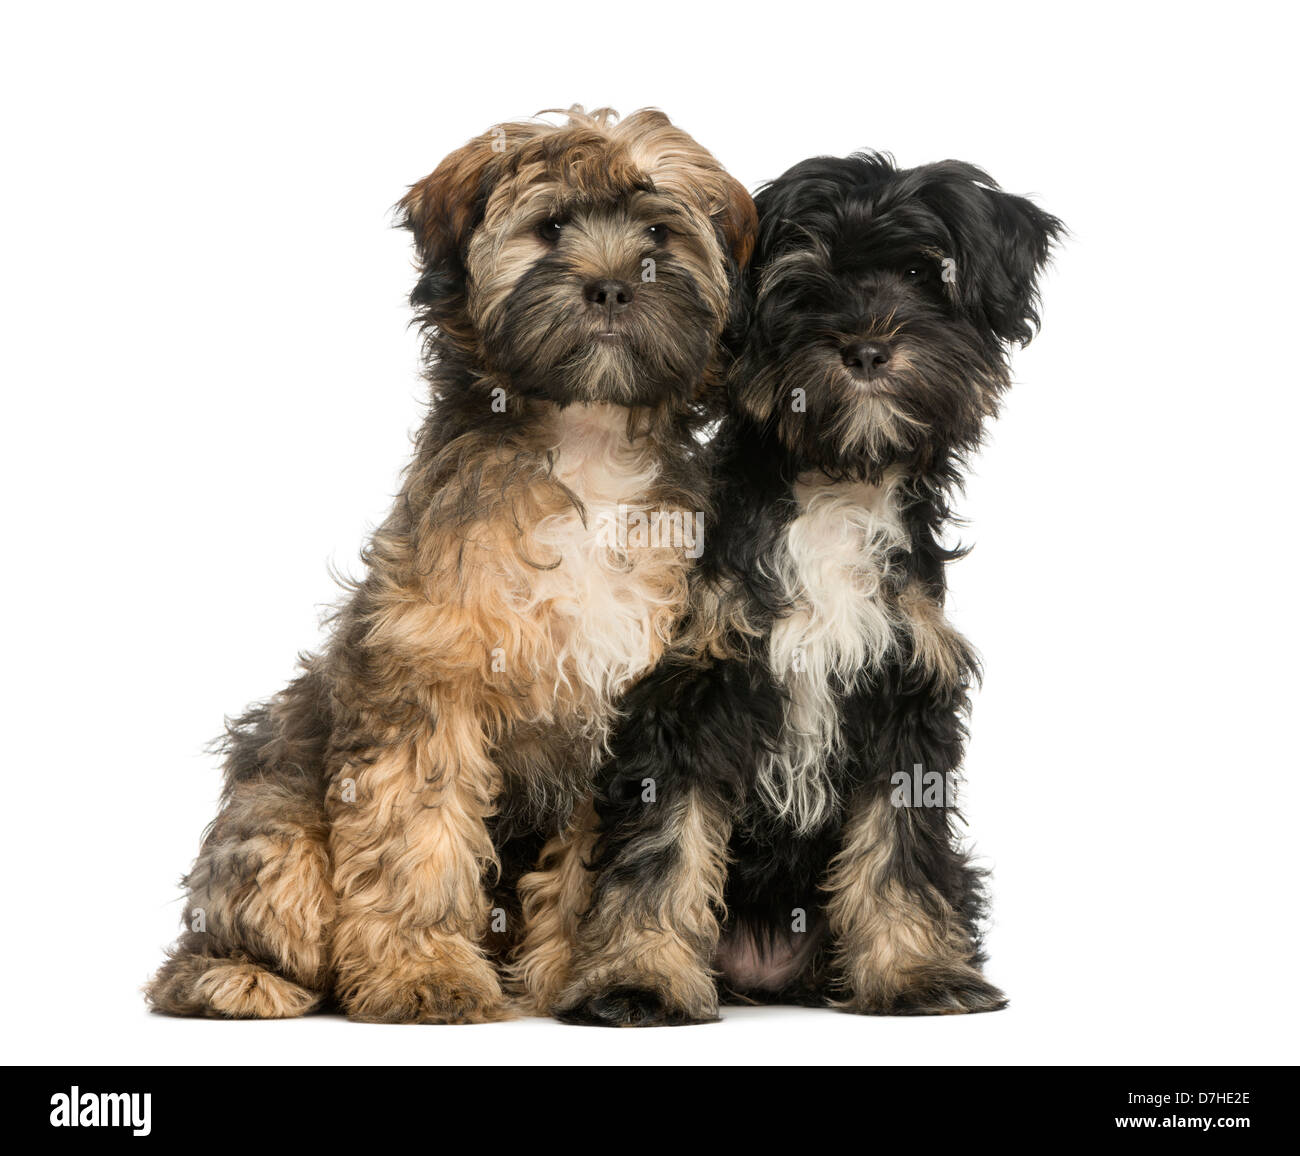 Two Tibetan Terriers, 4 months old, sitting next to each other against white background - Stock Image